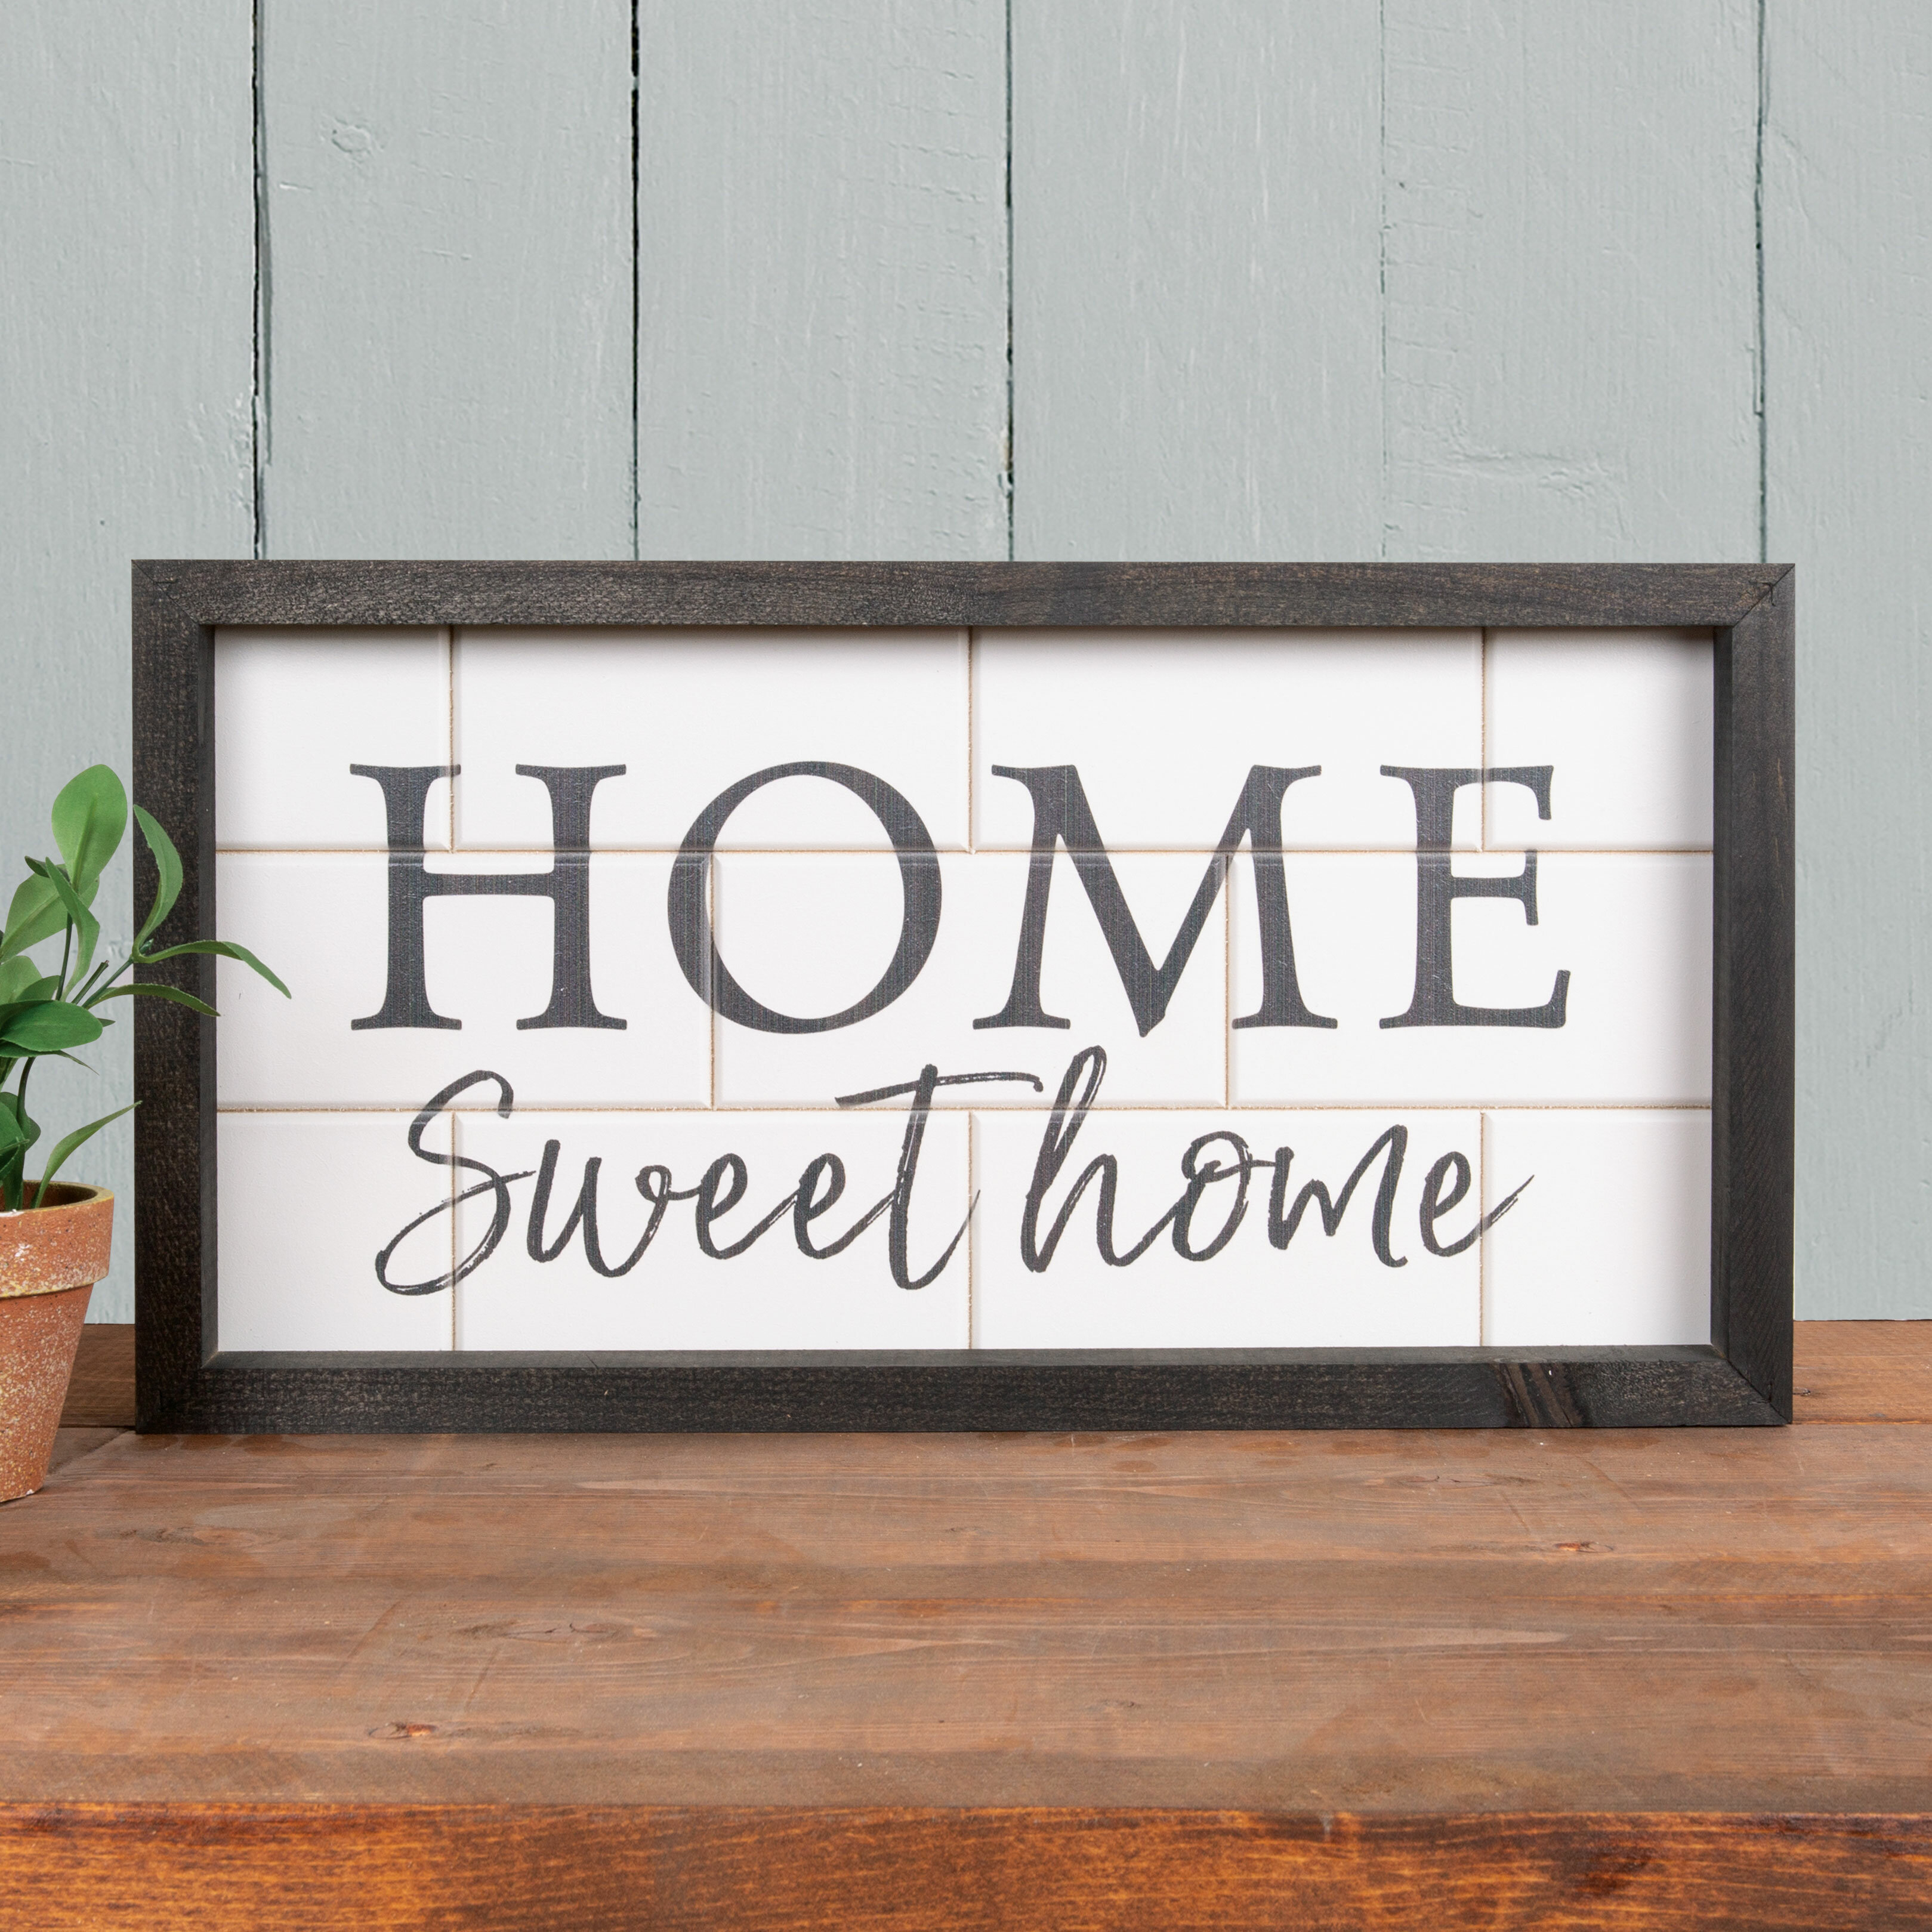 Home Sweet Home Wall Decor | Wayfair With Laser Engraved Home Sweet Home Wall Decor (View 12 of 30)